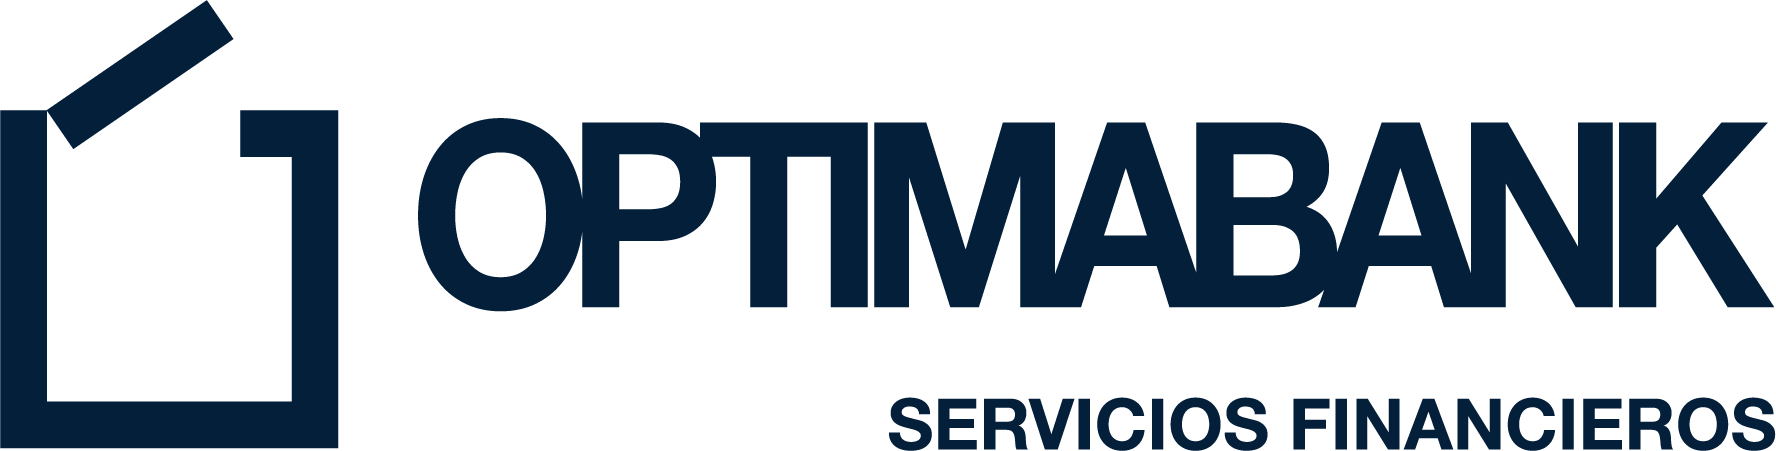 Optimabank logo